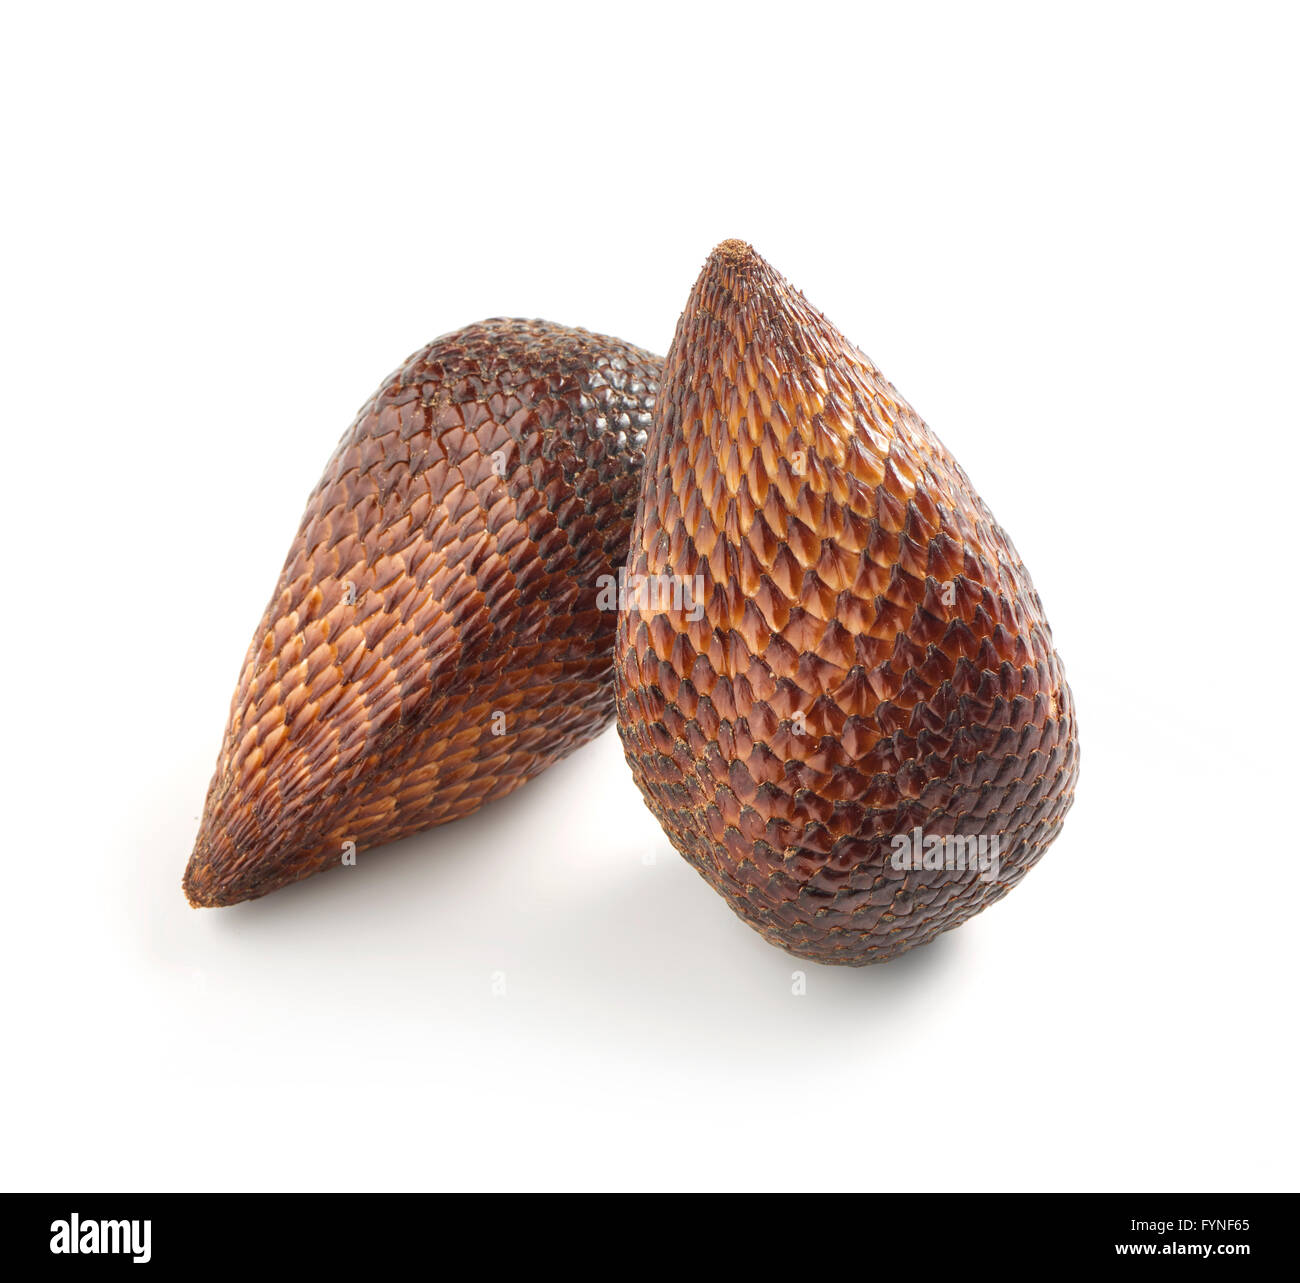 Close Up Still Life of Two Exotic Salak Palm Fruit with Brown Scaly Skin on White Background with Copy Space in - Stock Image